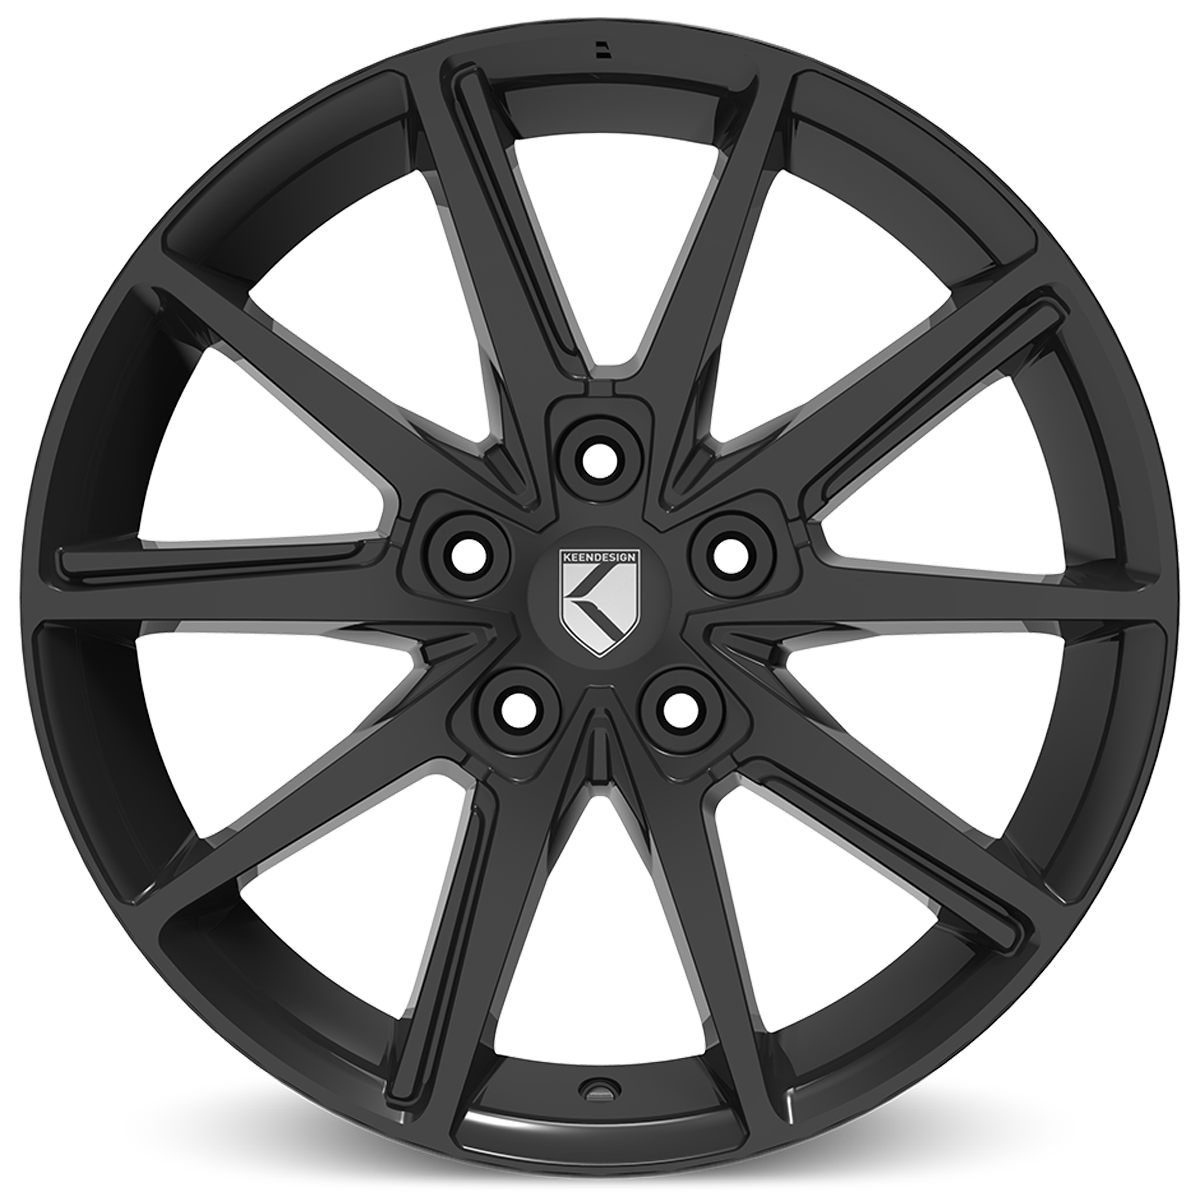 kd-03 gb front.png